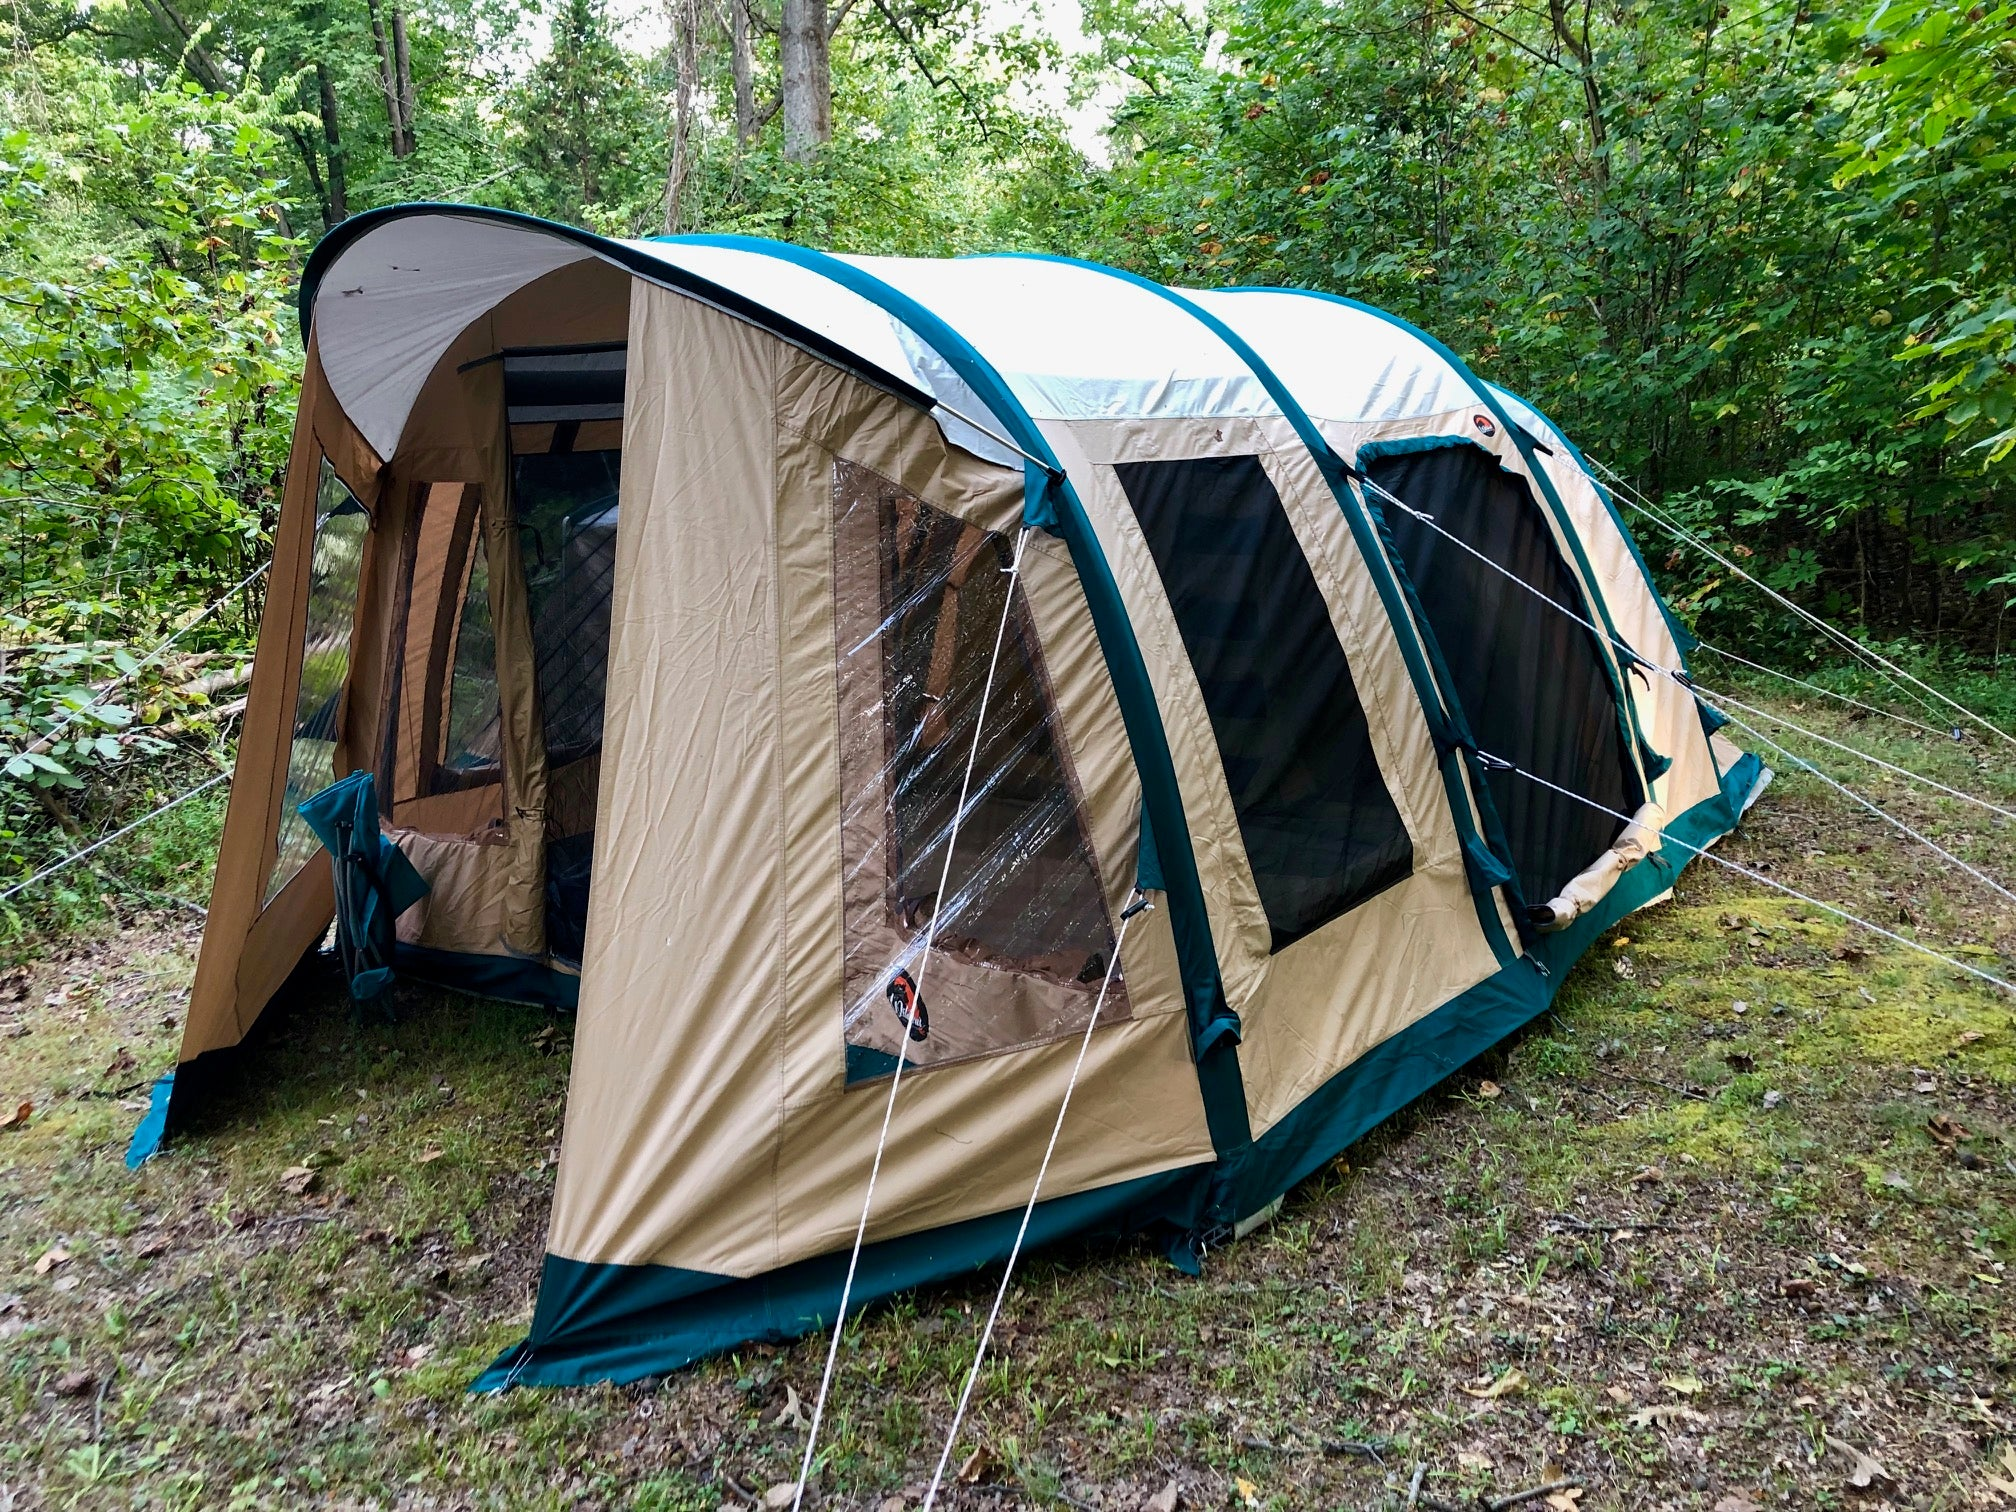 LYNX 640 Inflatable Camping Tent - Front Right Side View